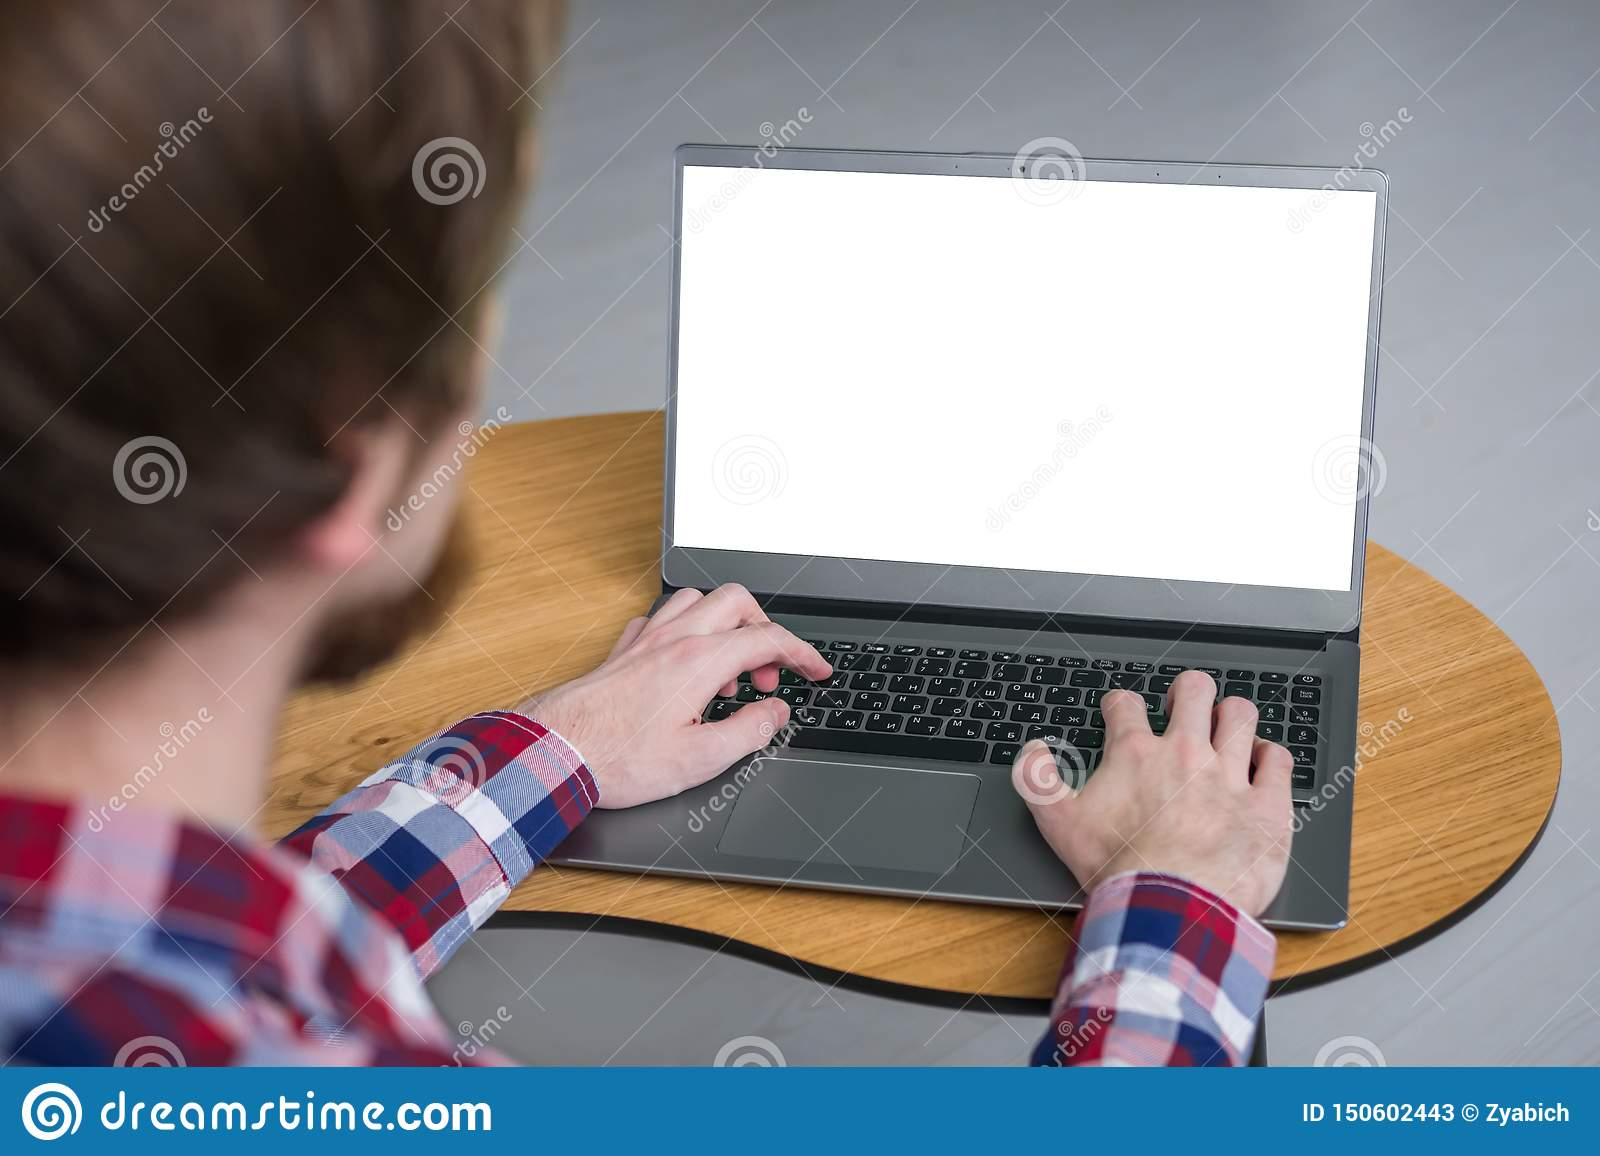 Man Hands Typing On Laptop Keyboard With White Blank